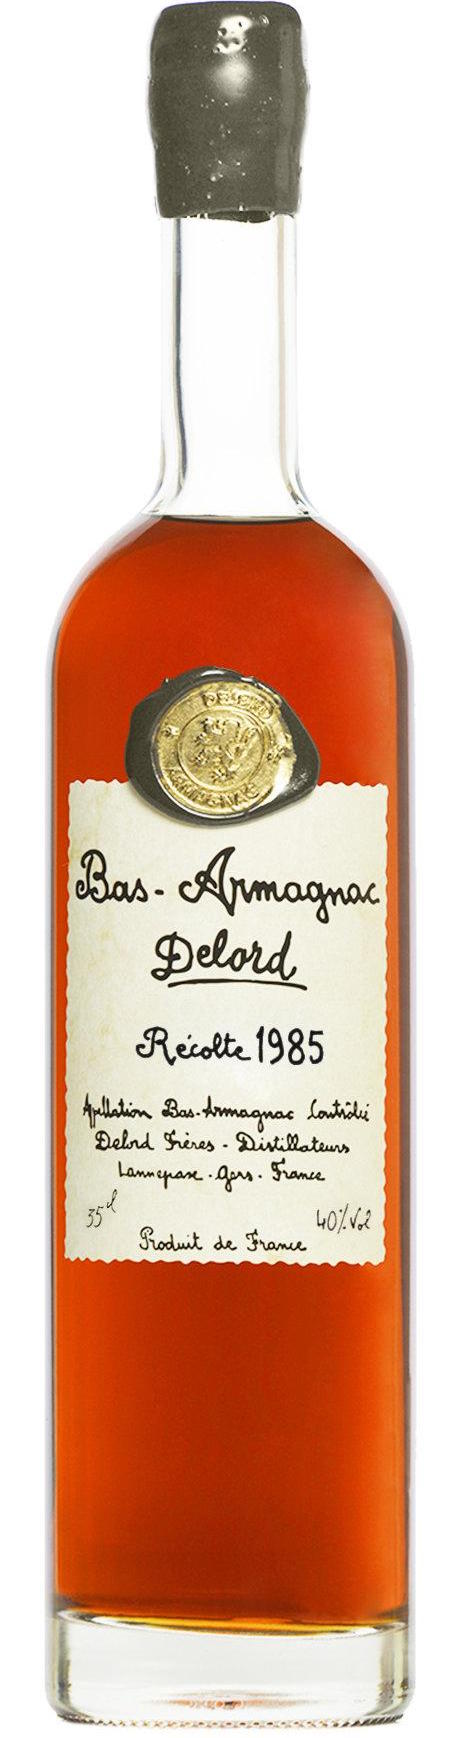 Delord Bas Armagnac Cask Strength 1985 750ml